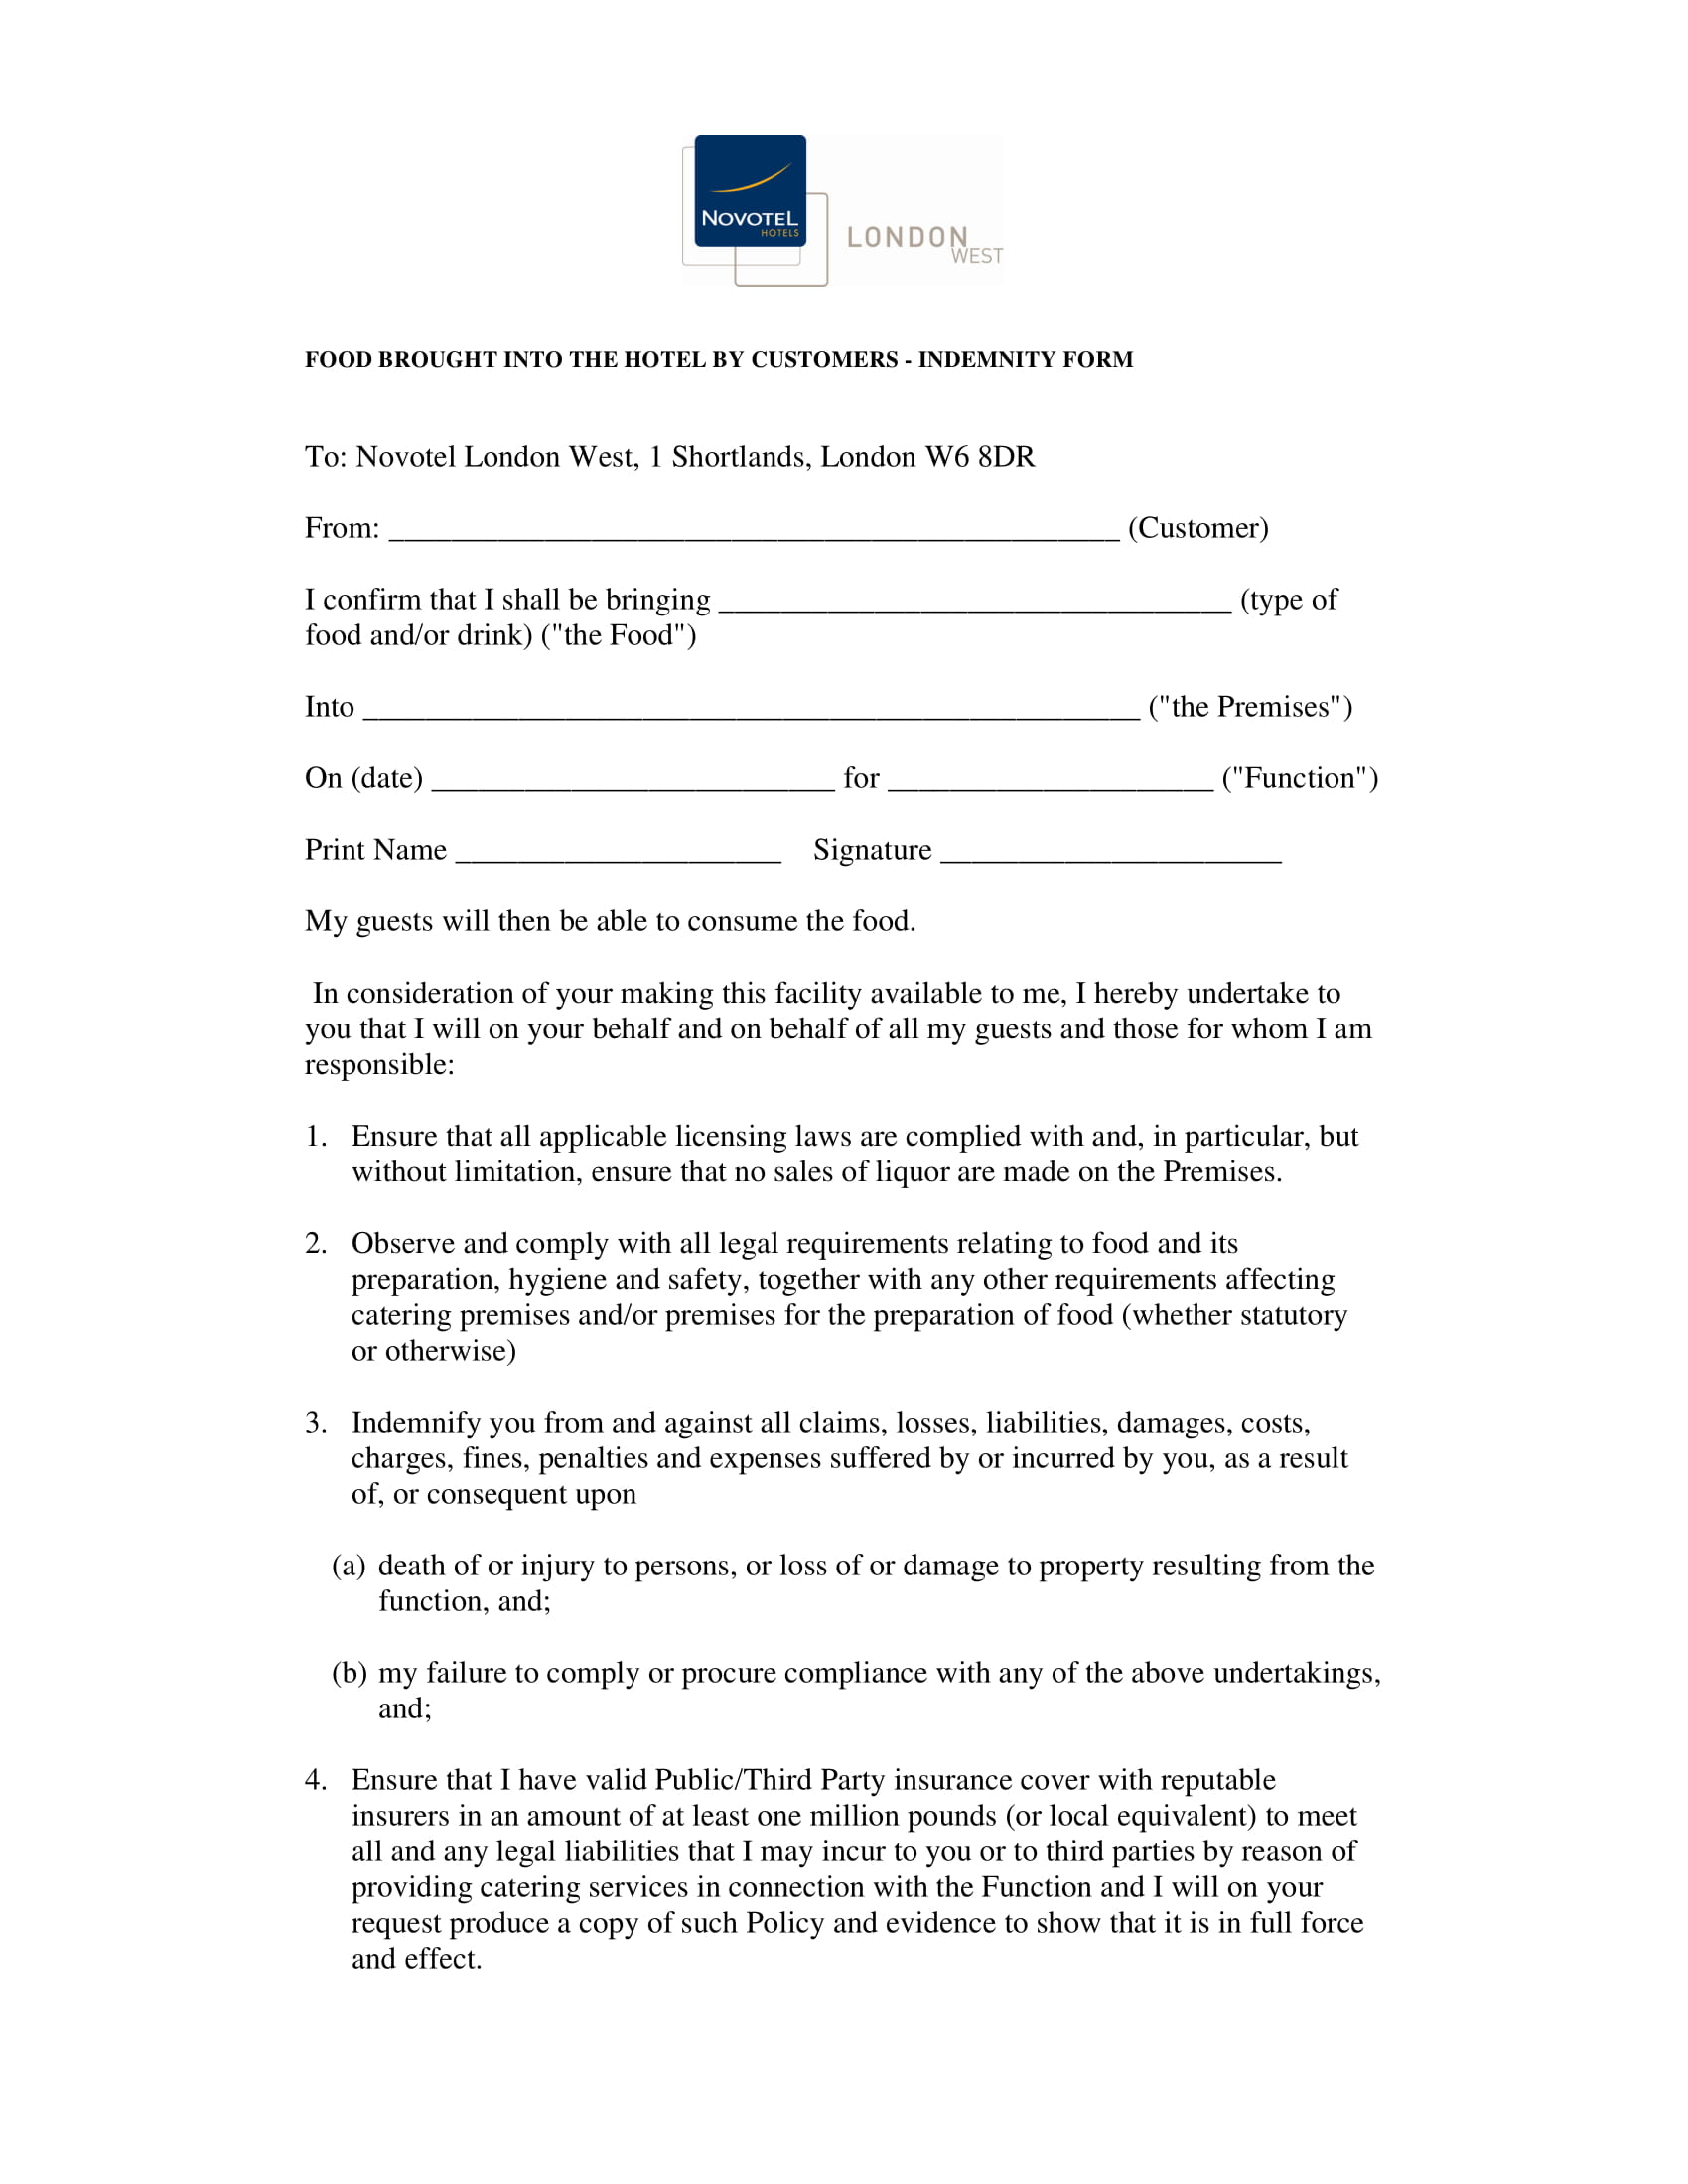 food disclaimer form in pdf 1